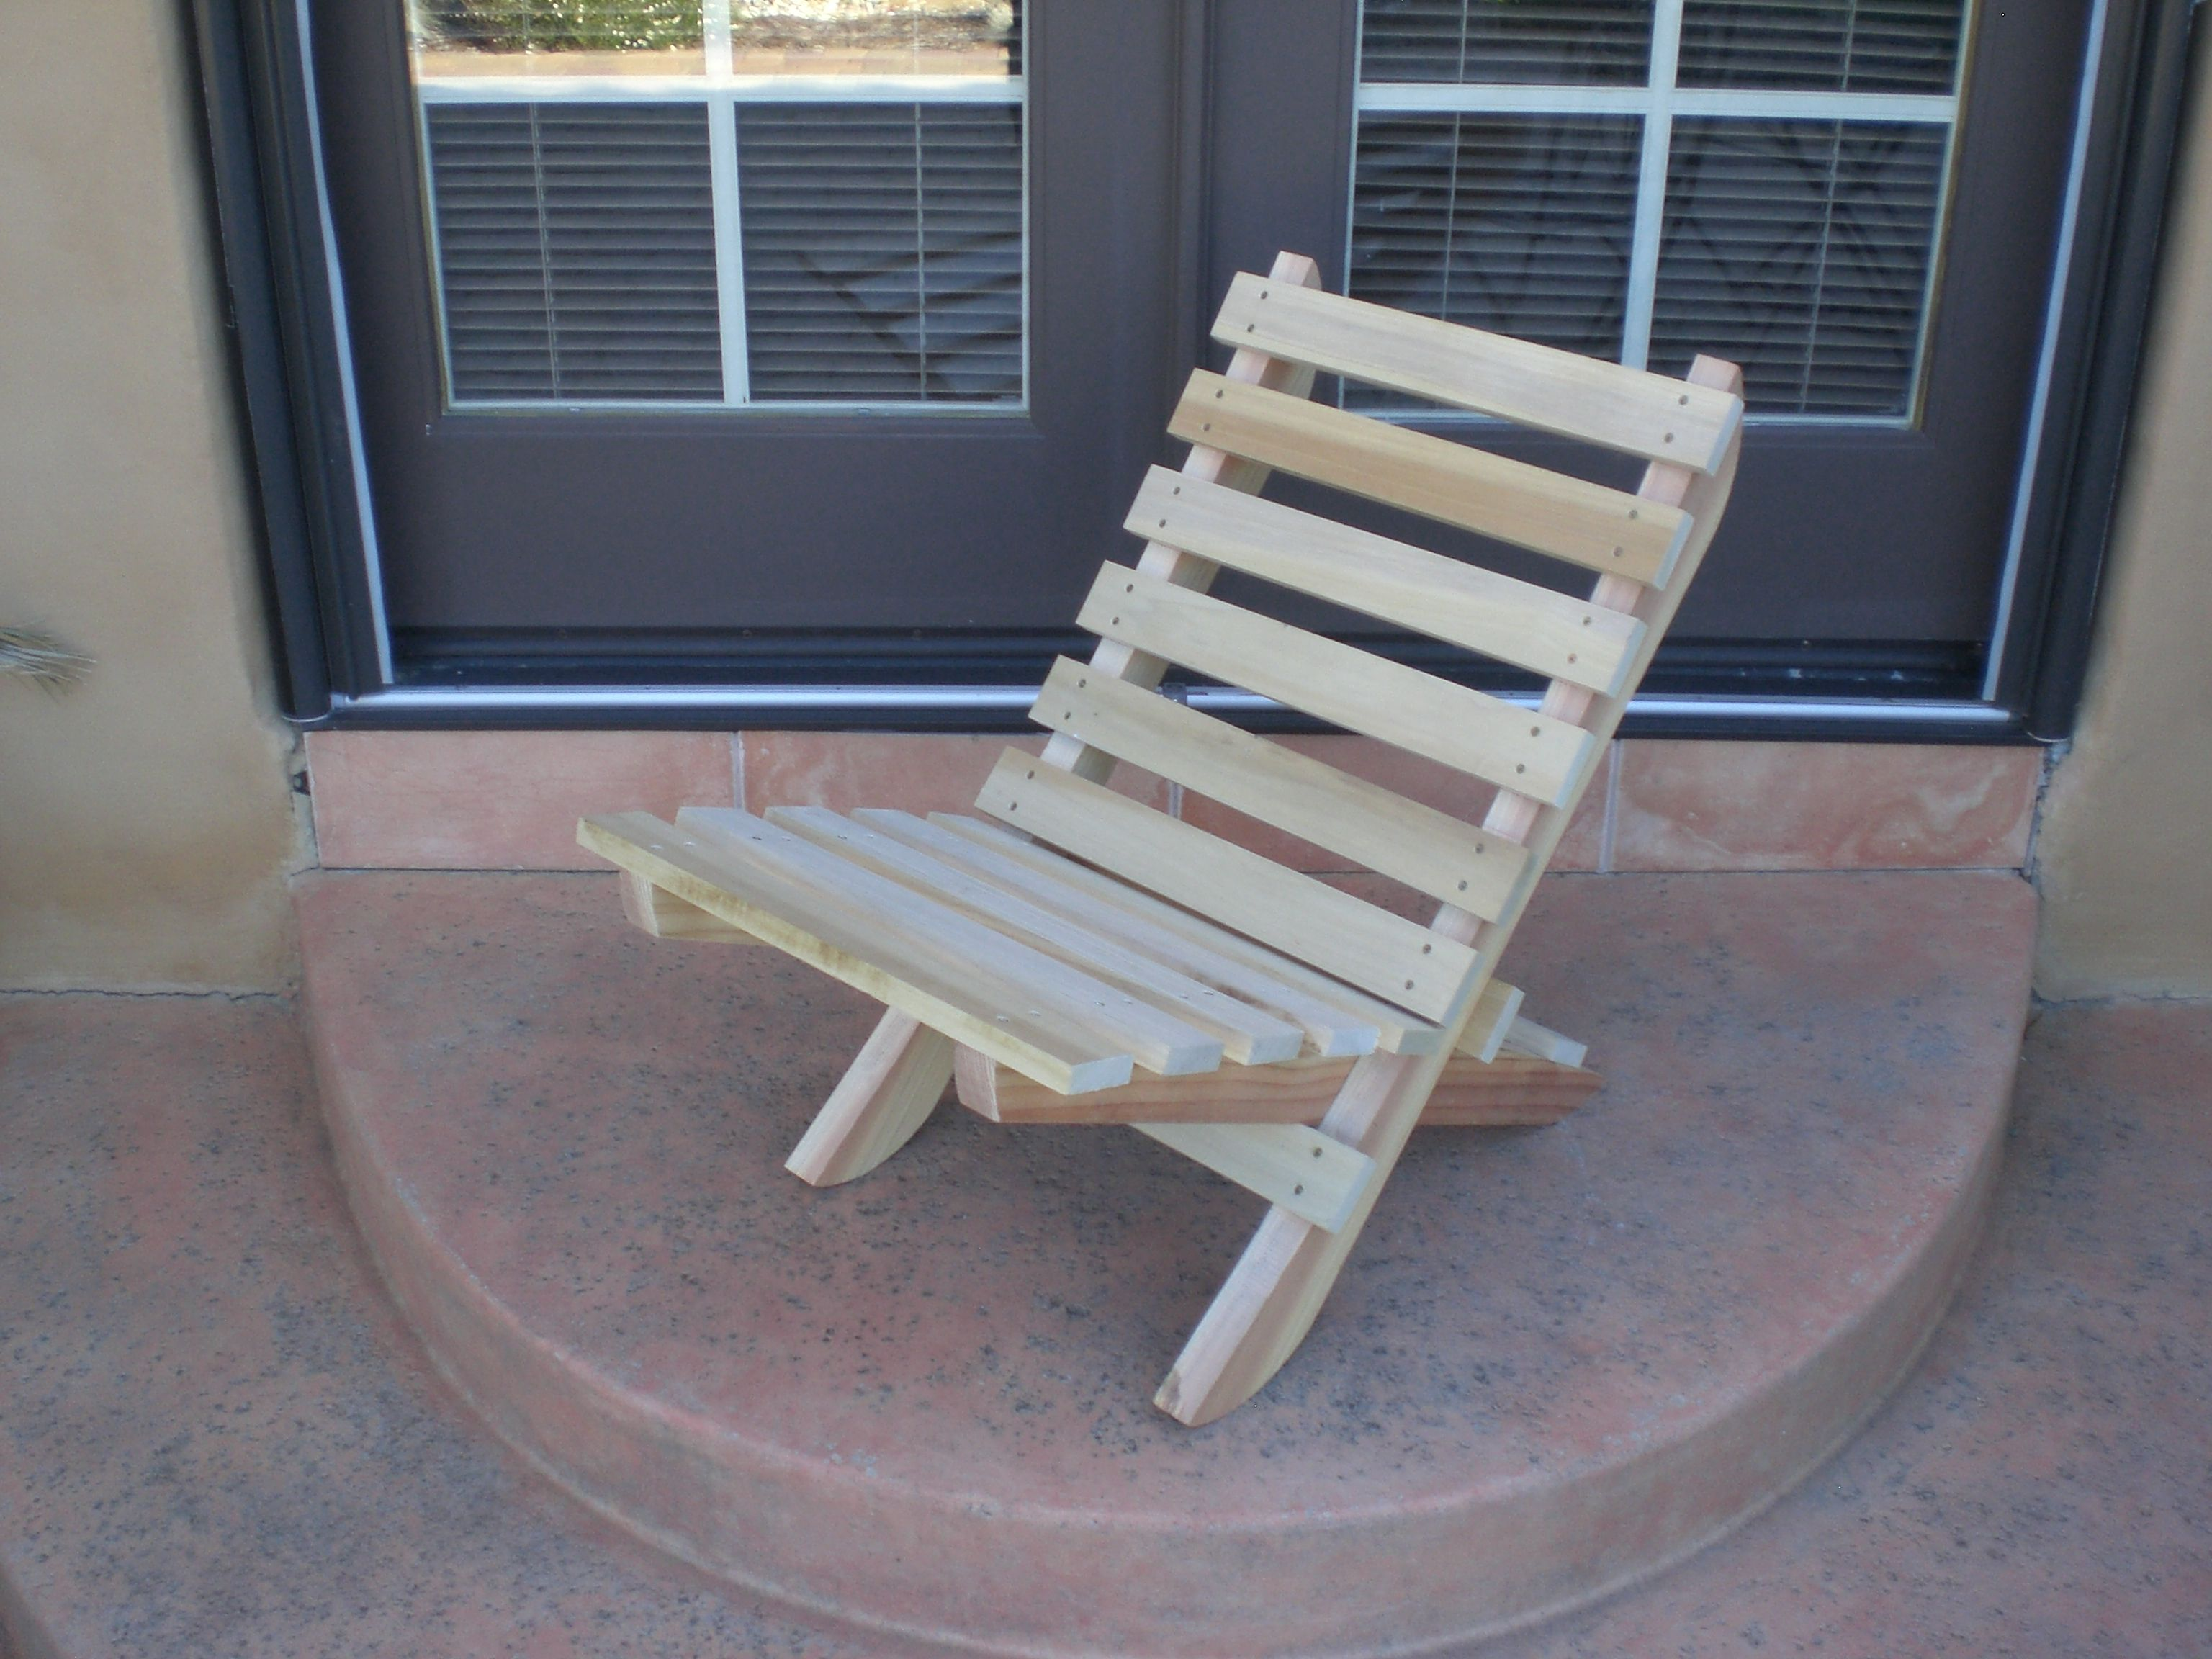 Wood folding chair outdoor - Outdoor Folding Chair Plans Outdoor Folding Chair Wood Plans